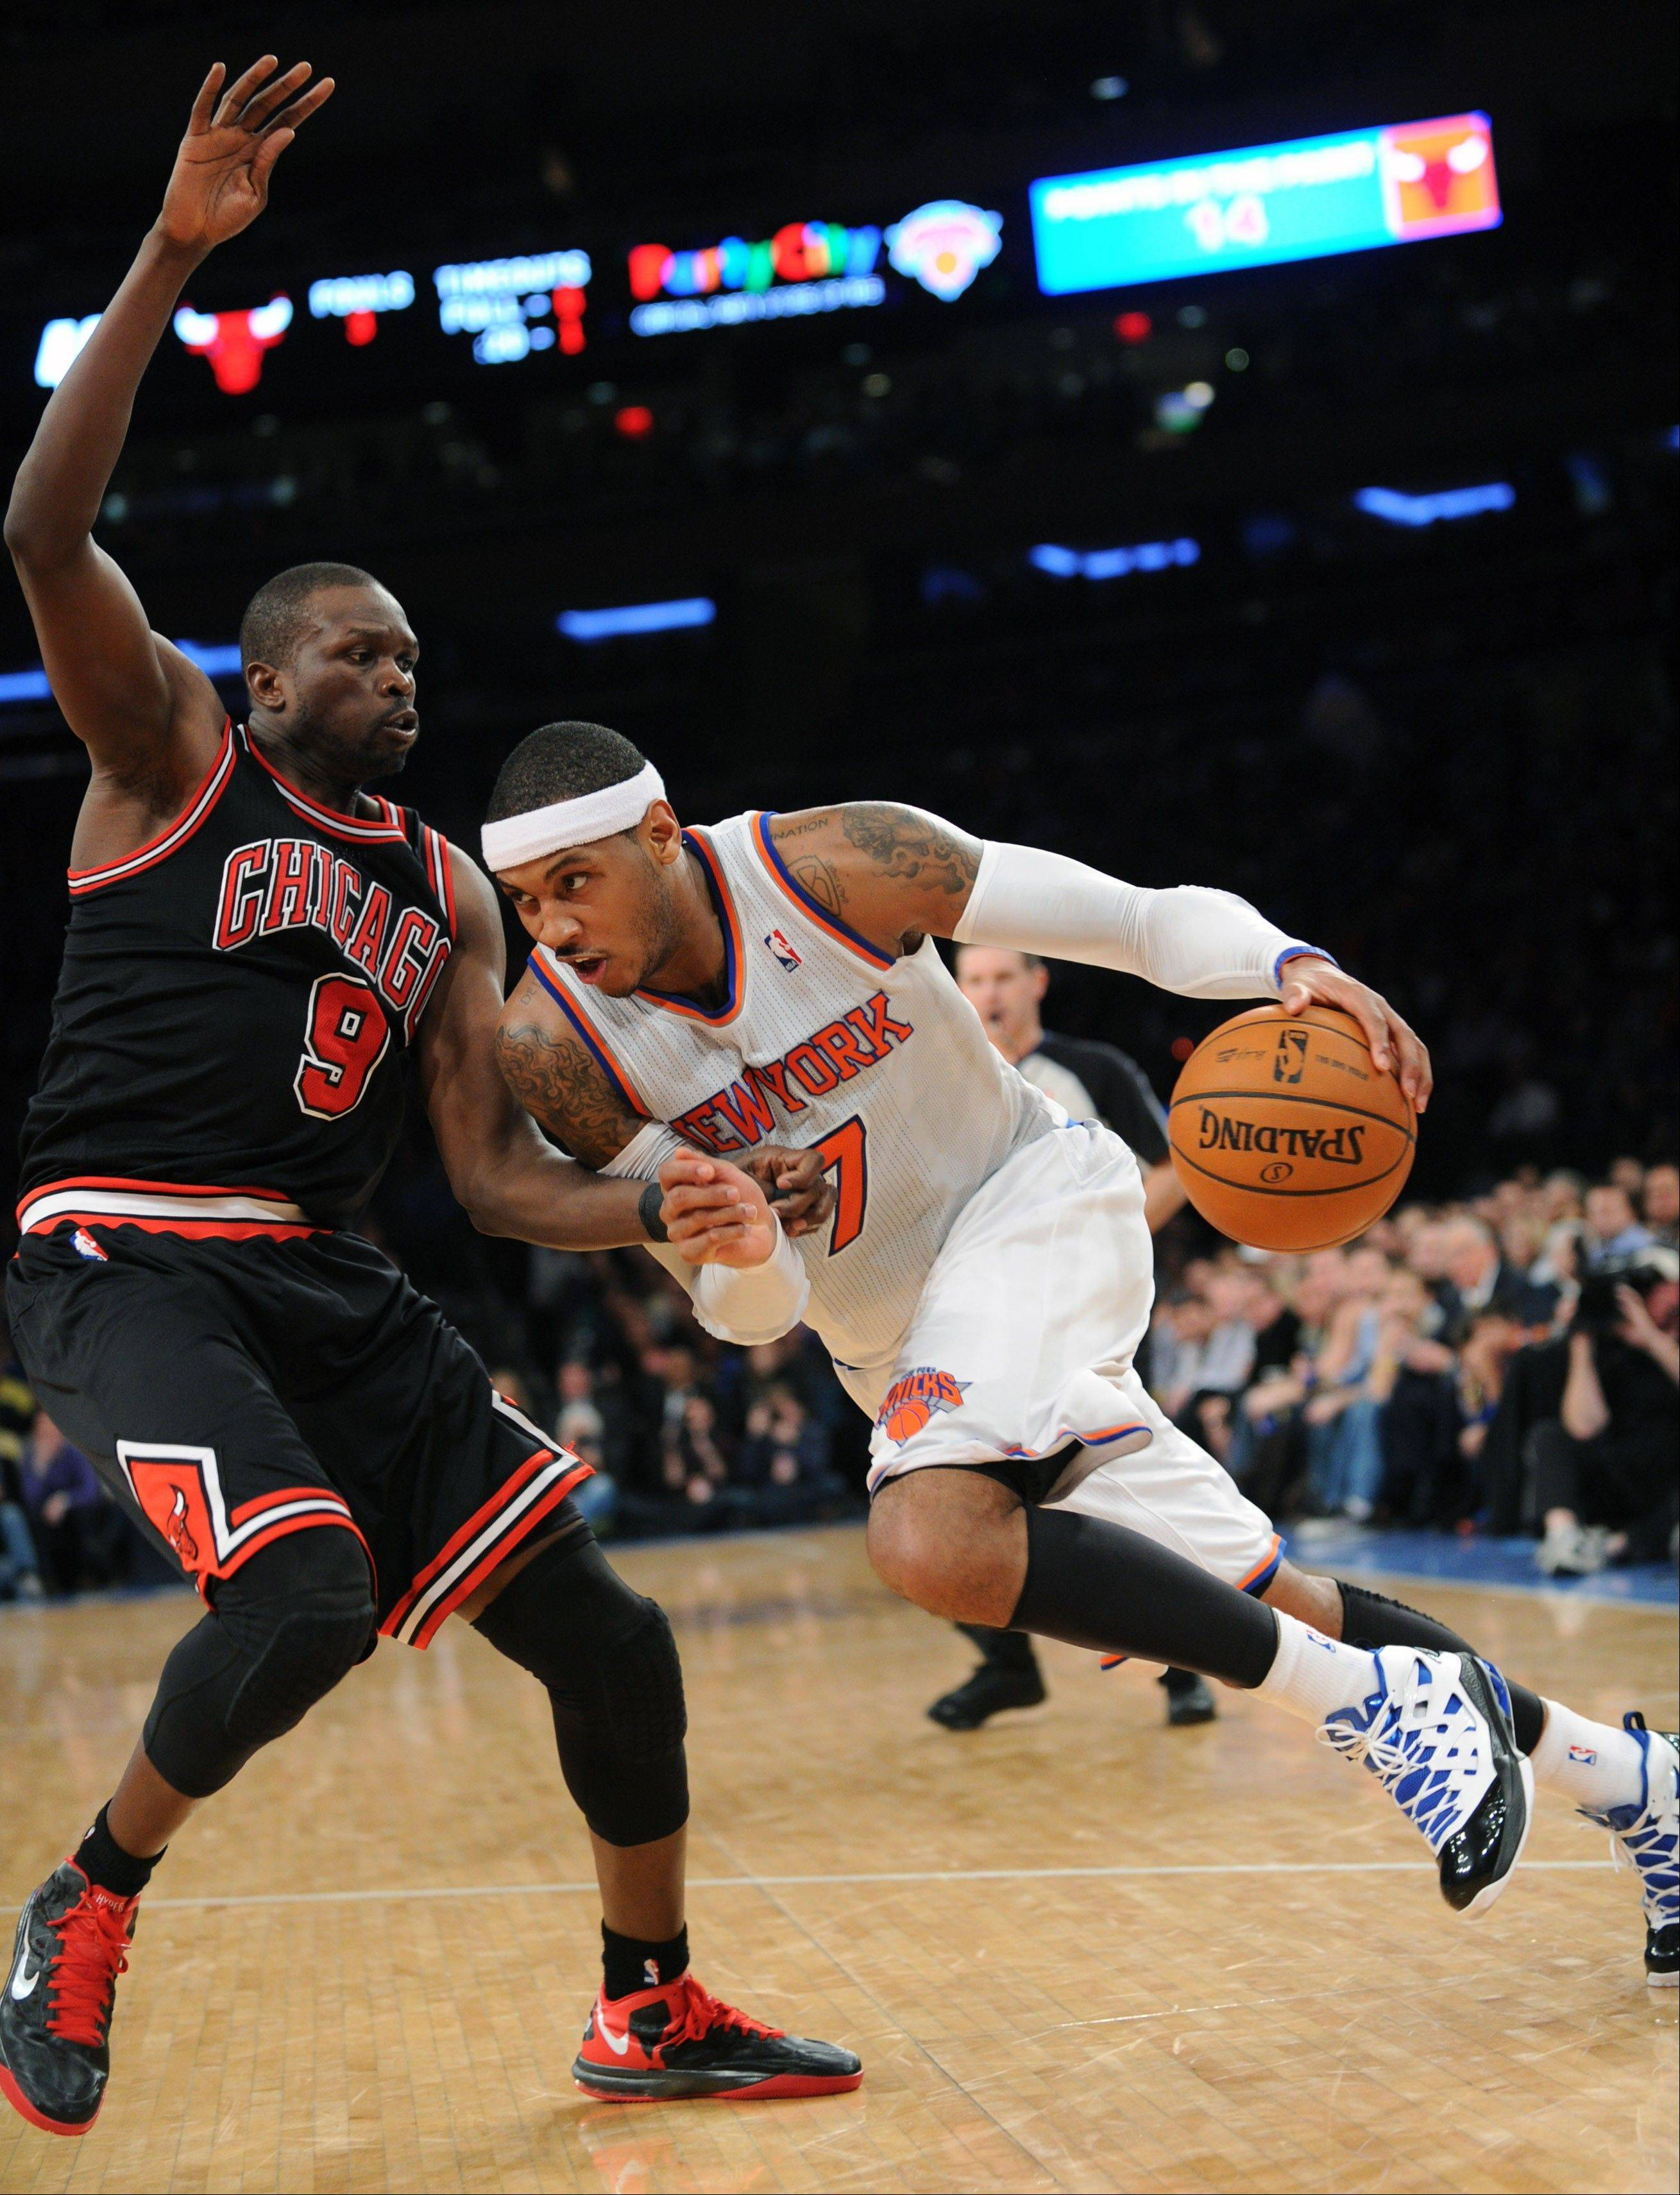 New York Knicks' Carmelo Anthony, right, attempts to drive to the basket as he is guarded by Chicago Bulls' Luol Deng, of Sudan, during the first half of an NBA basketball game Friday, Jan. 11, 2013, at Madison Square Garden in New York. (AP Photo/Bill Kostroun)